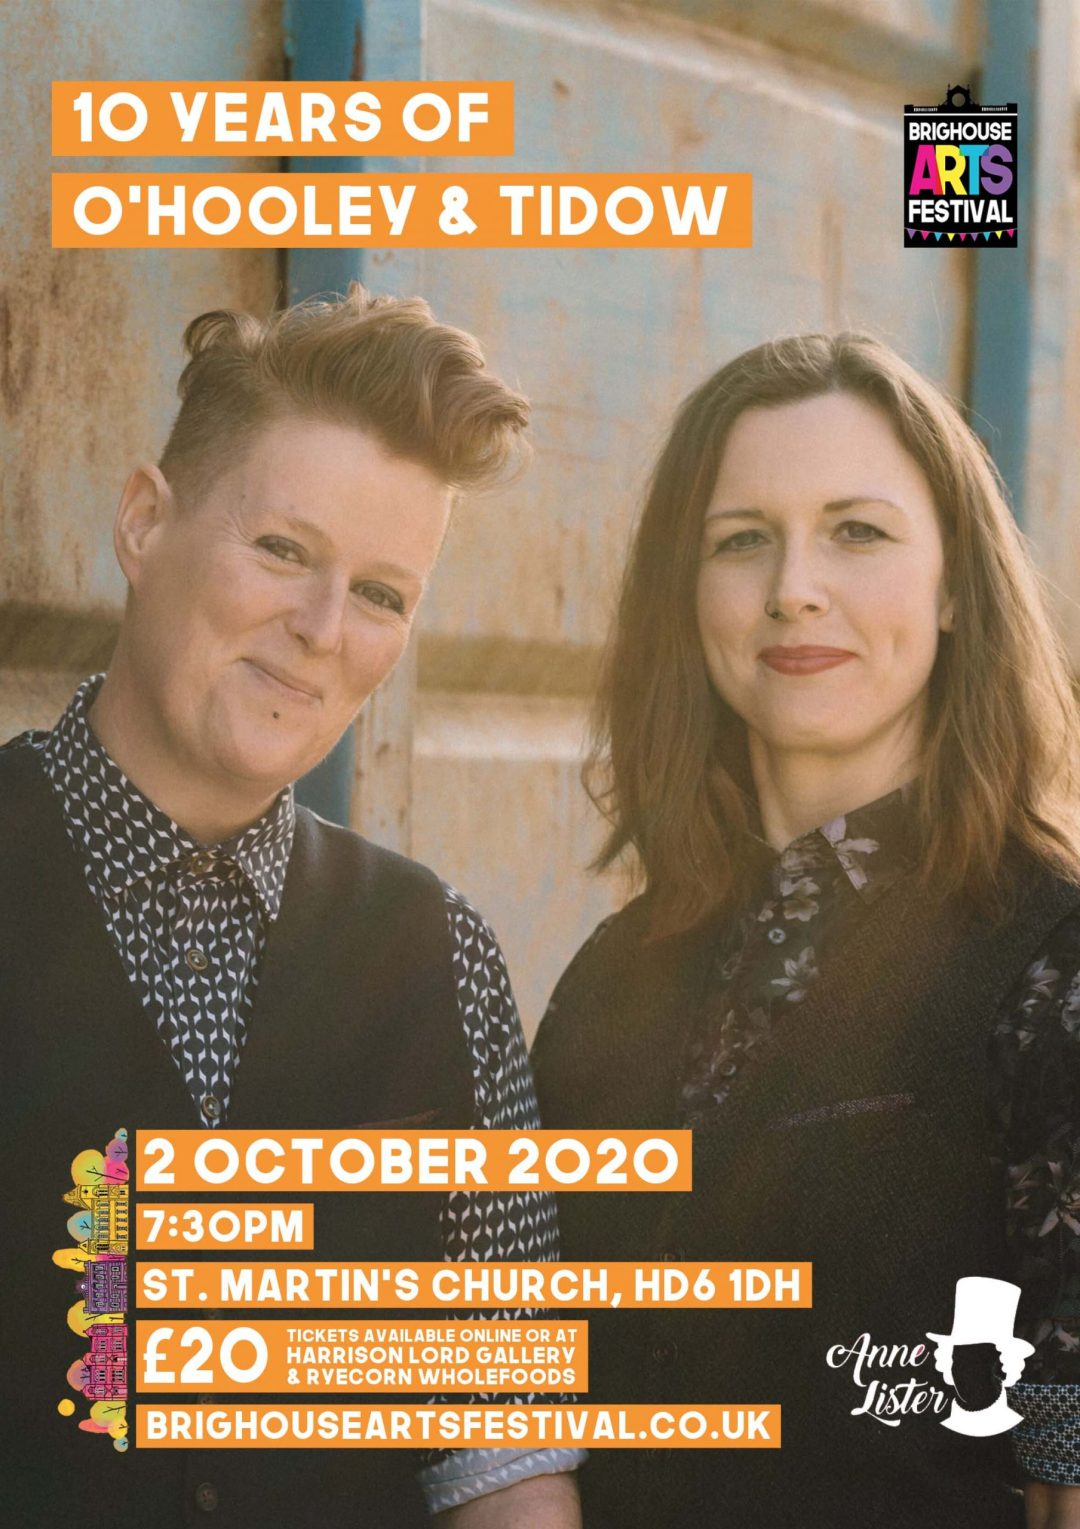 O'Hooley and Tidow - Brighouse Arts Festival 2020